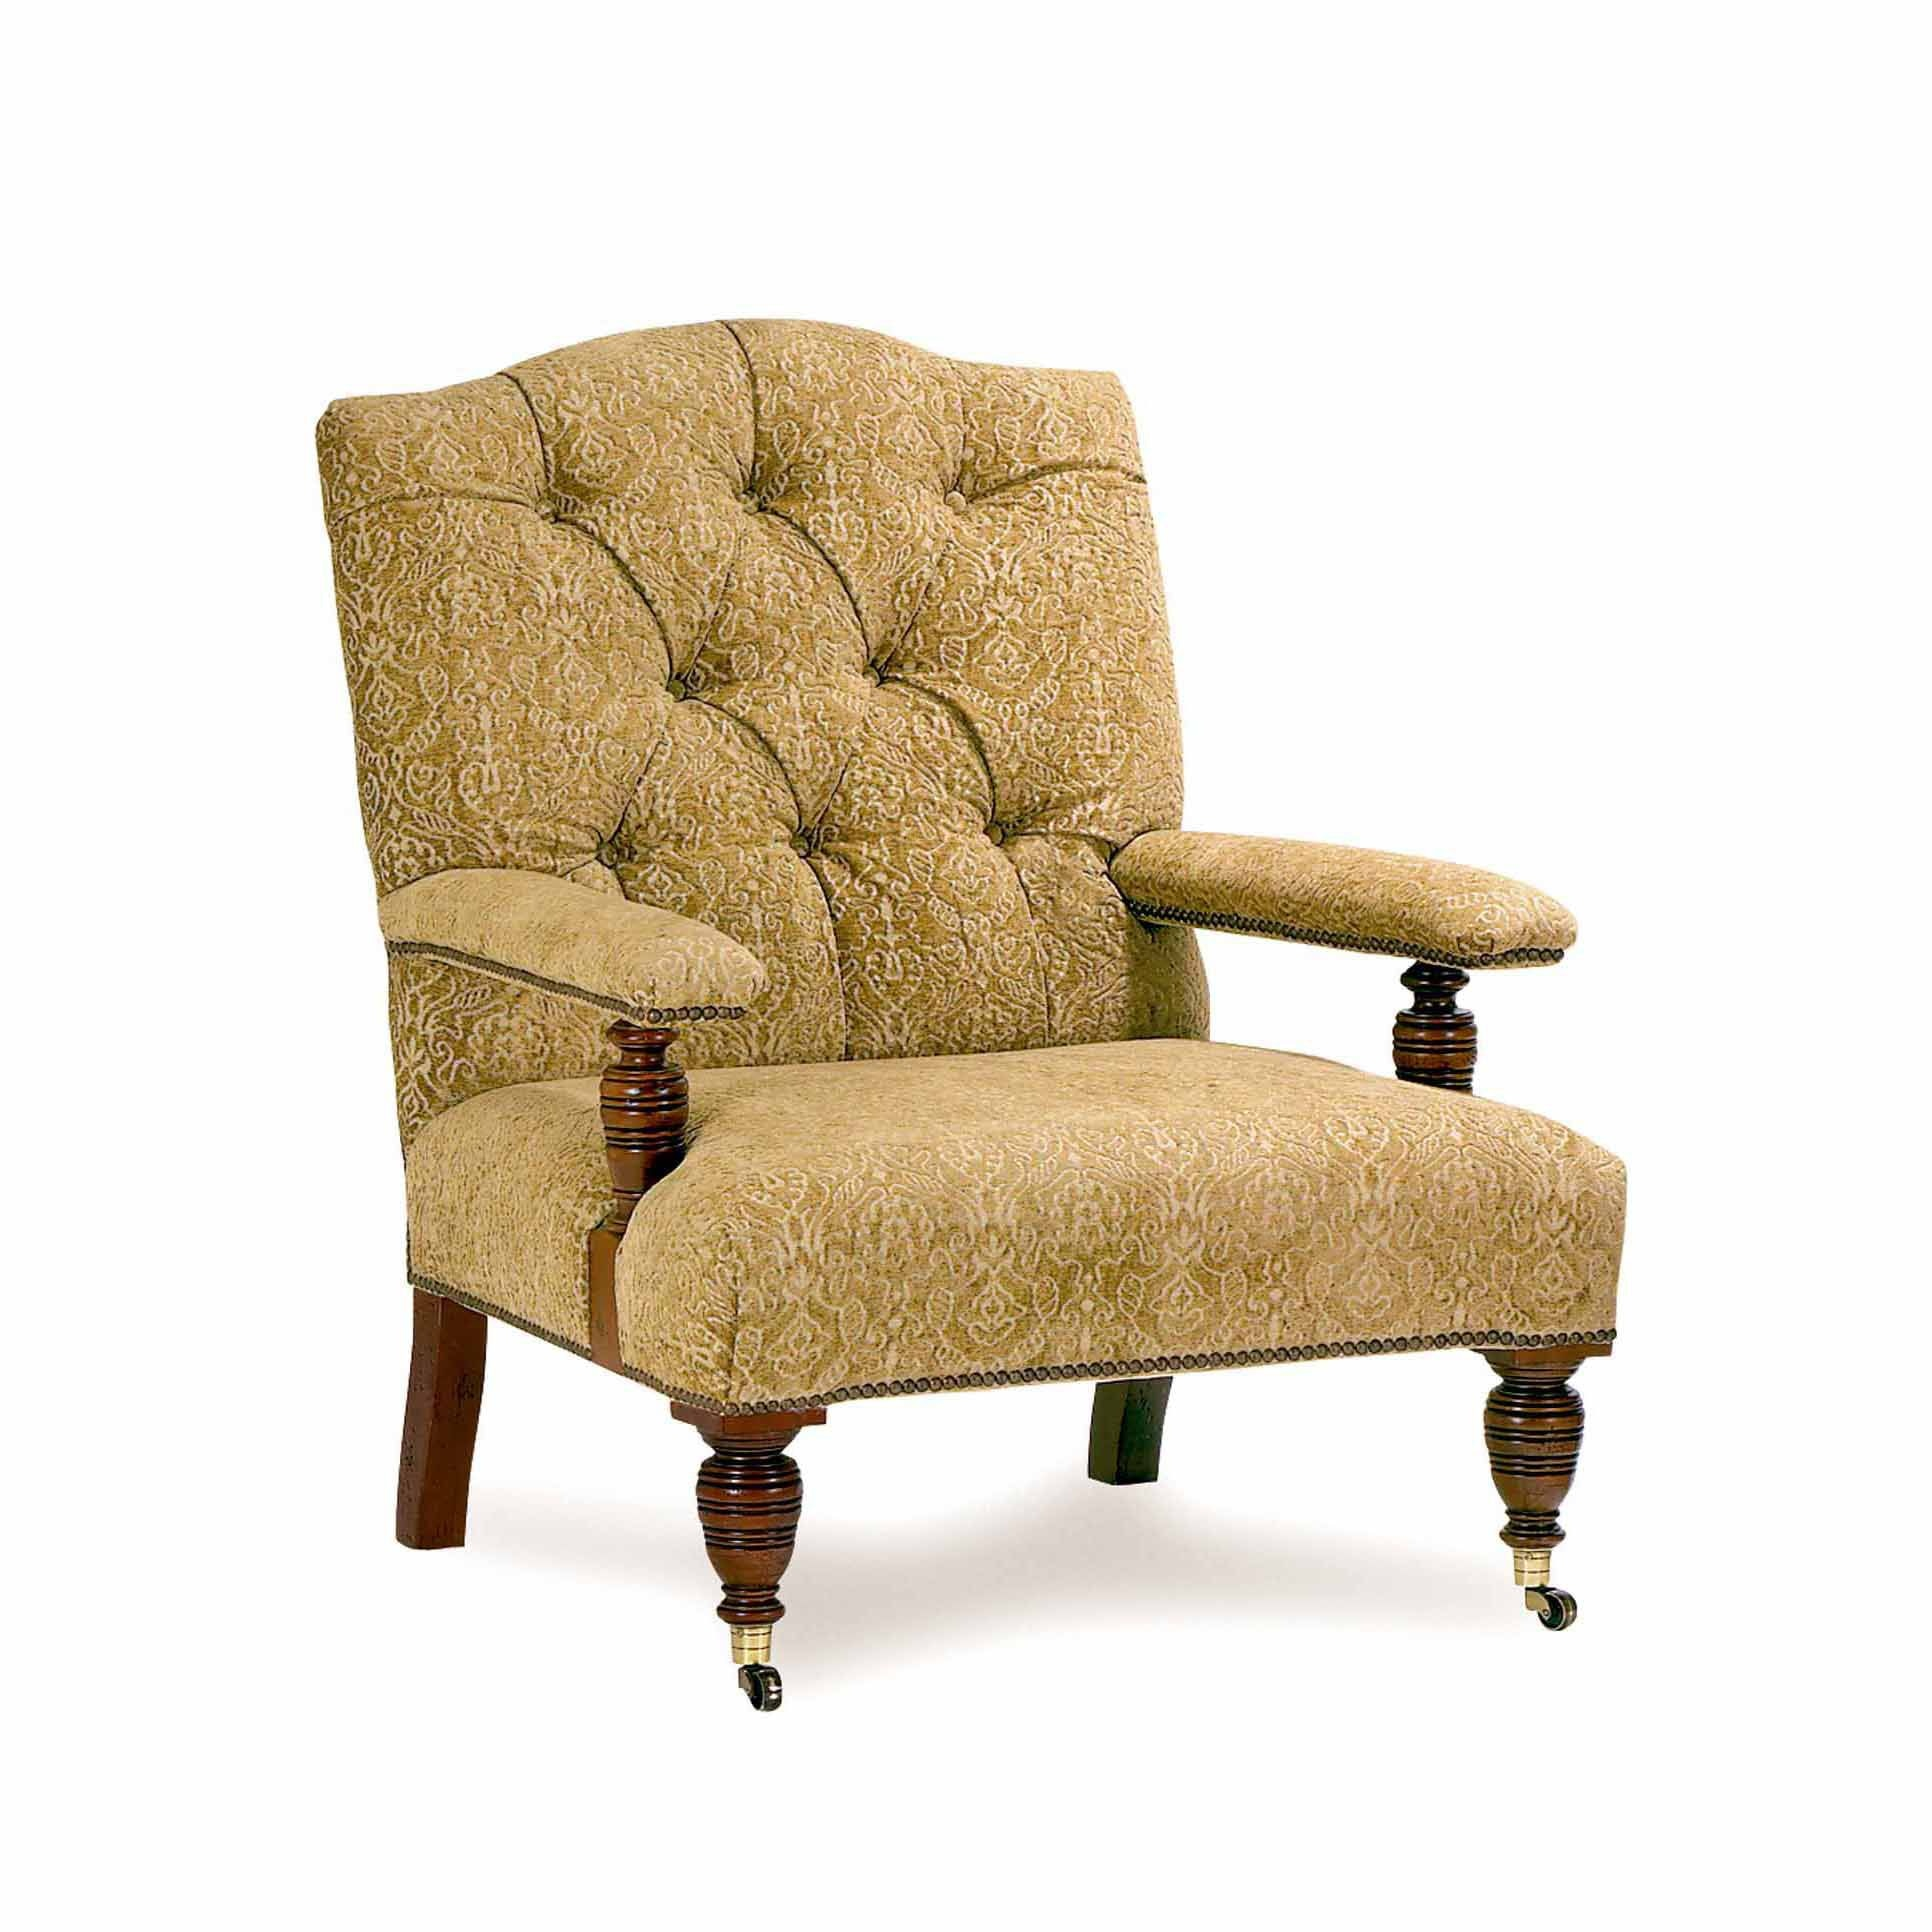 Lee Jofa Draycott Tufted Back Chair H4291 20